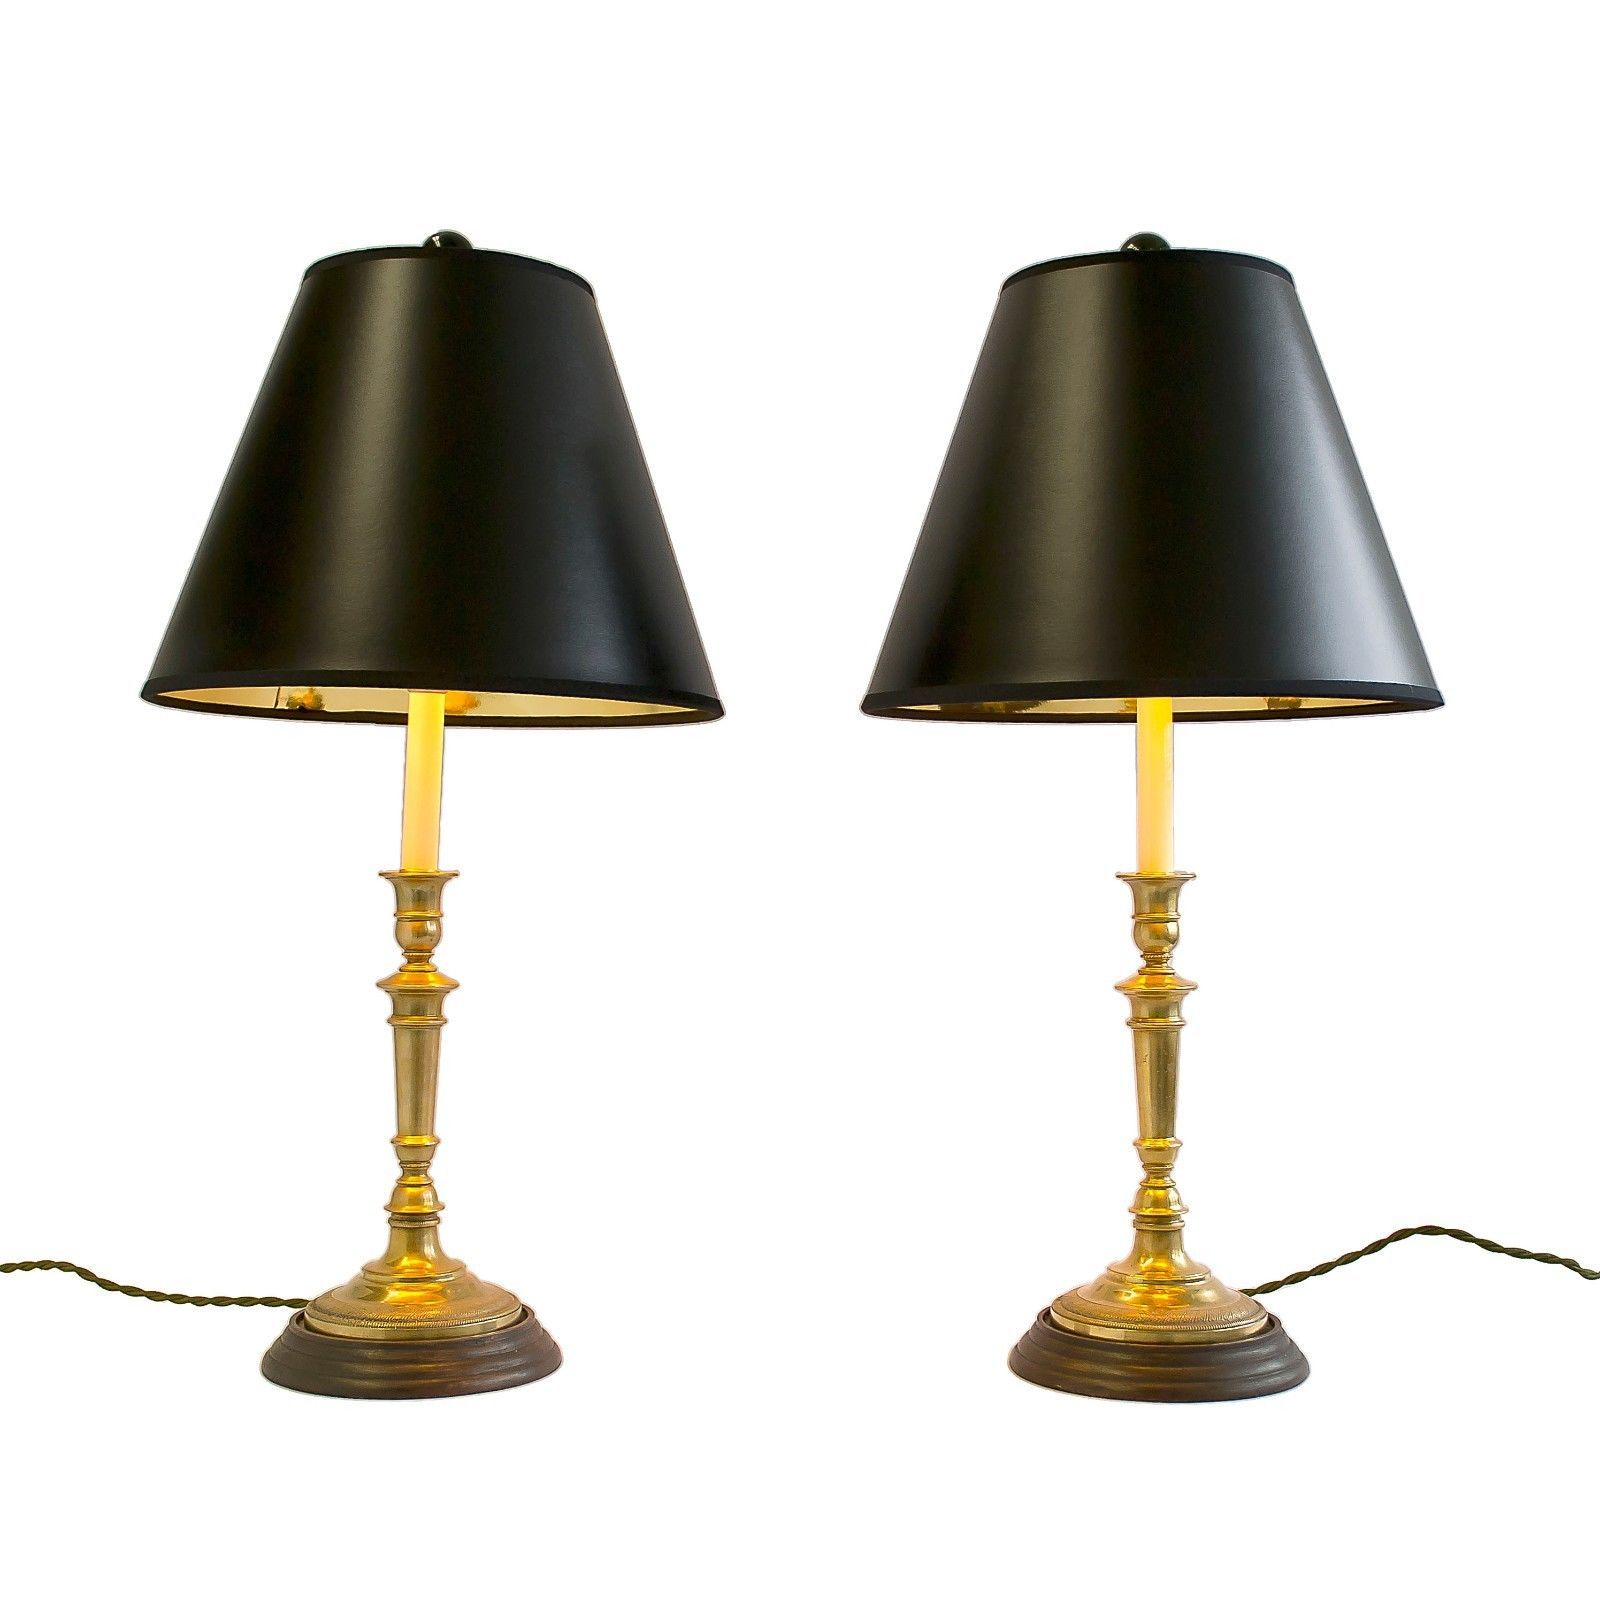 of and lamp candlestick gold pair lamps twisted green cord black w lampshades brass pin